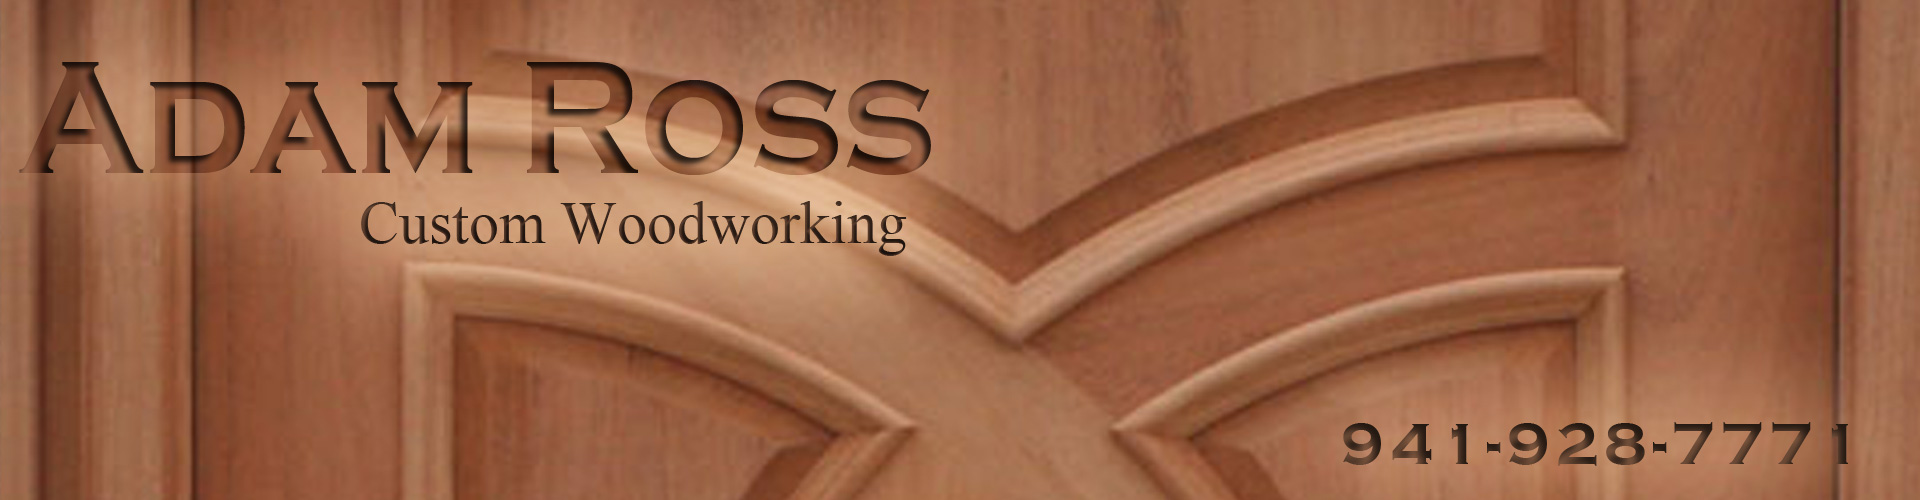 About Adam Ross Woodworking